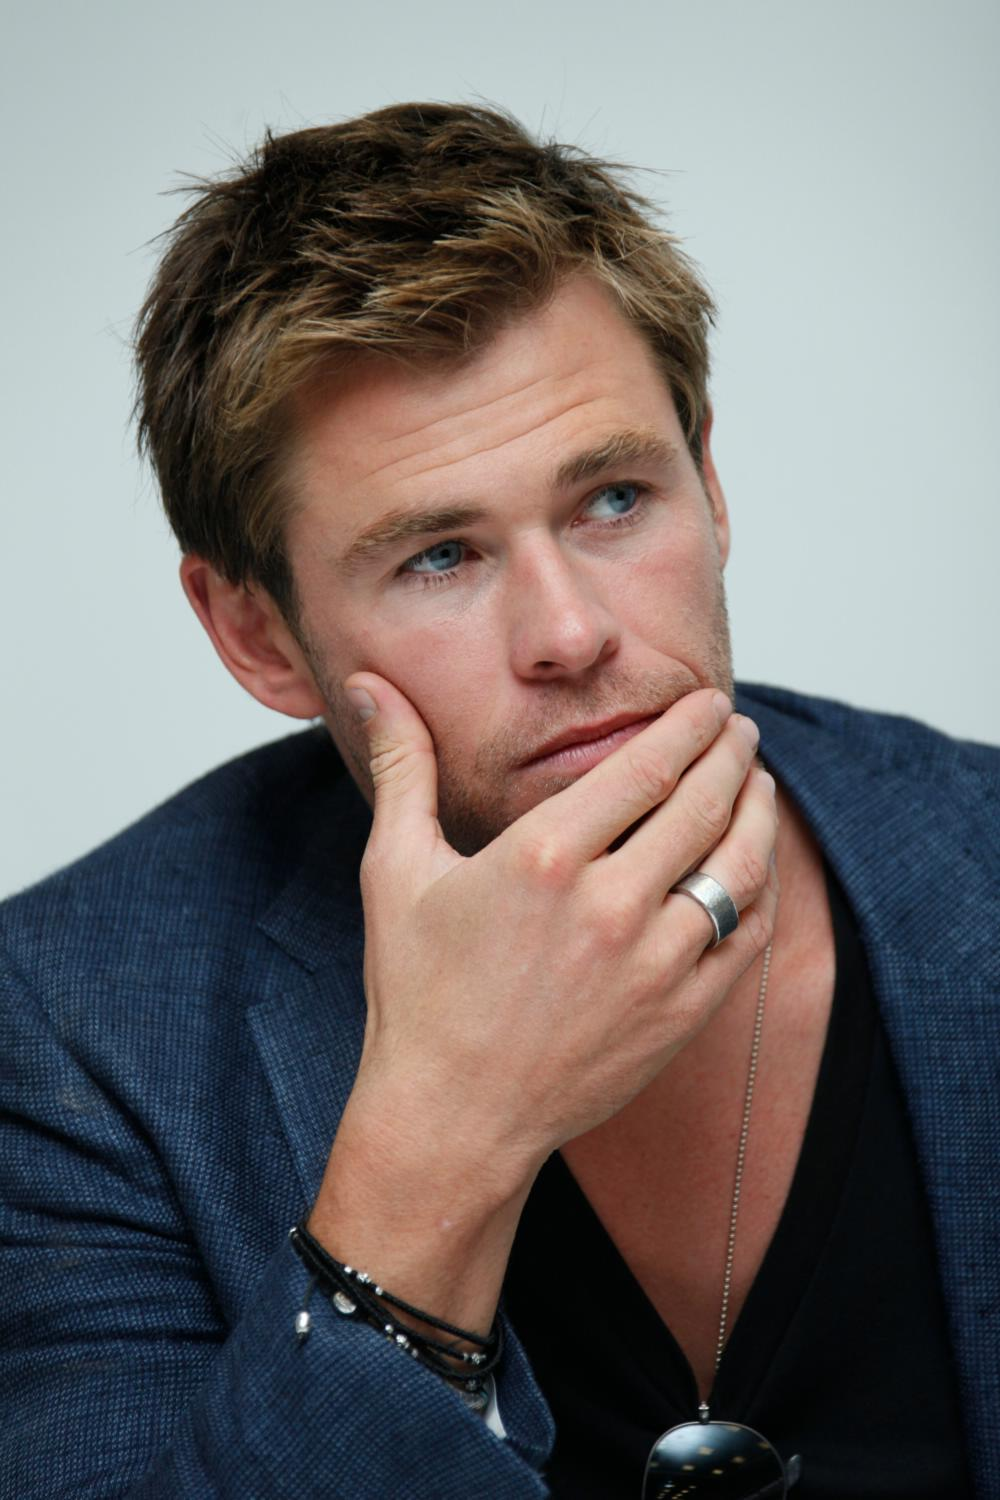 Chris Hemsworth at The Avengers: Age of Ultron Press Conference-1